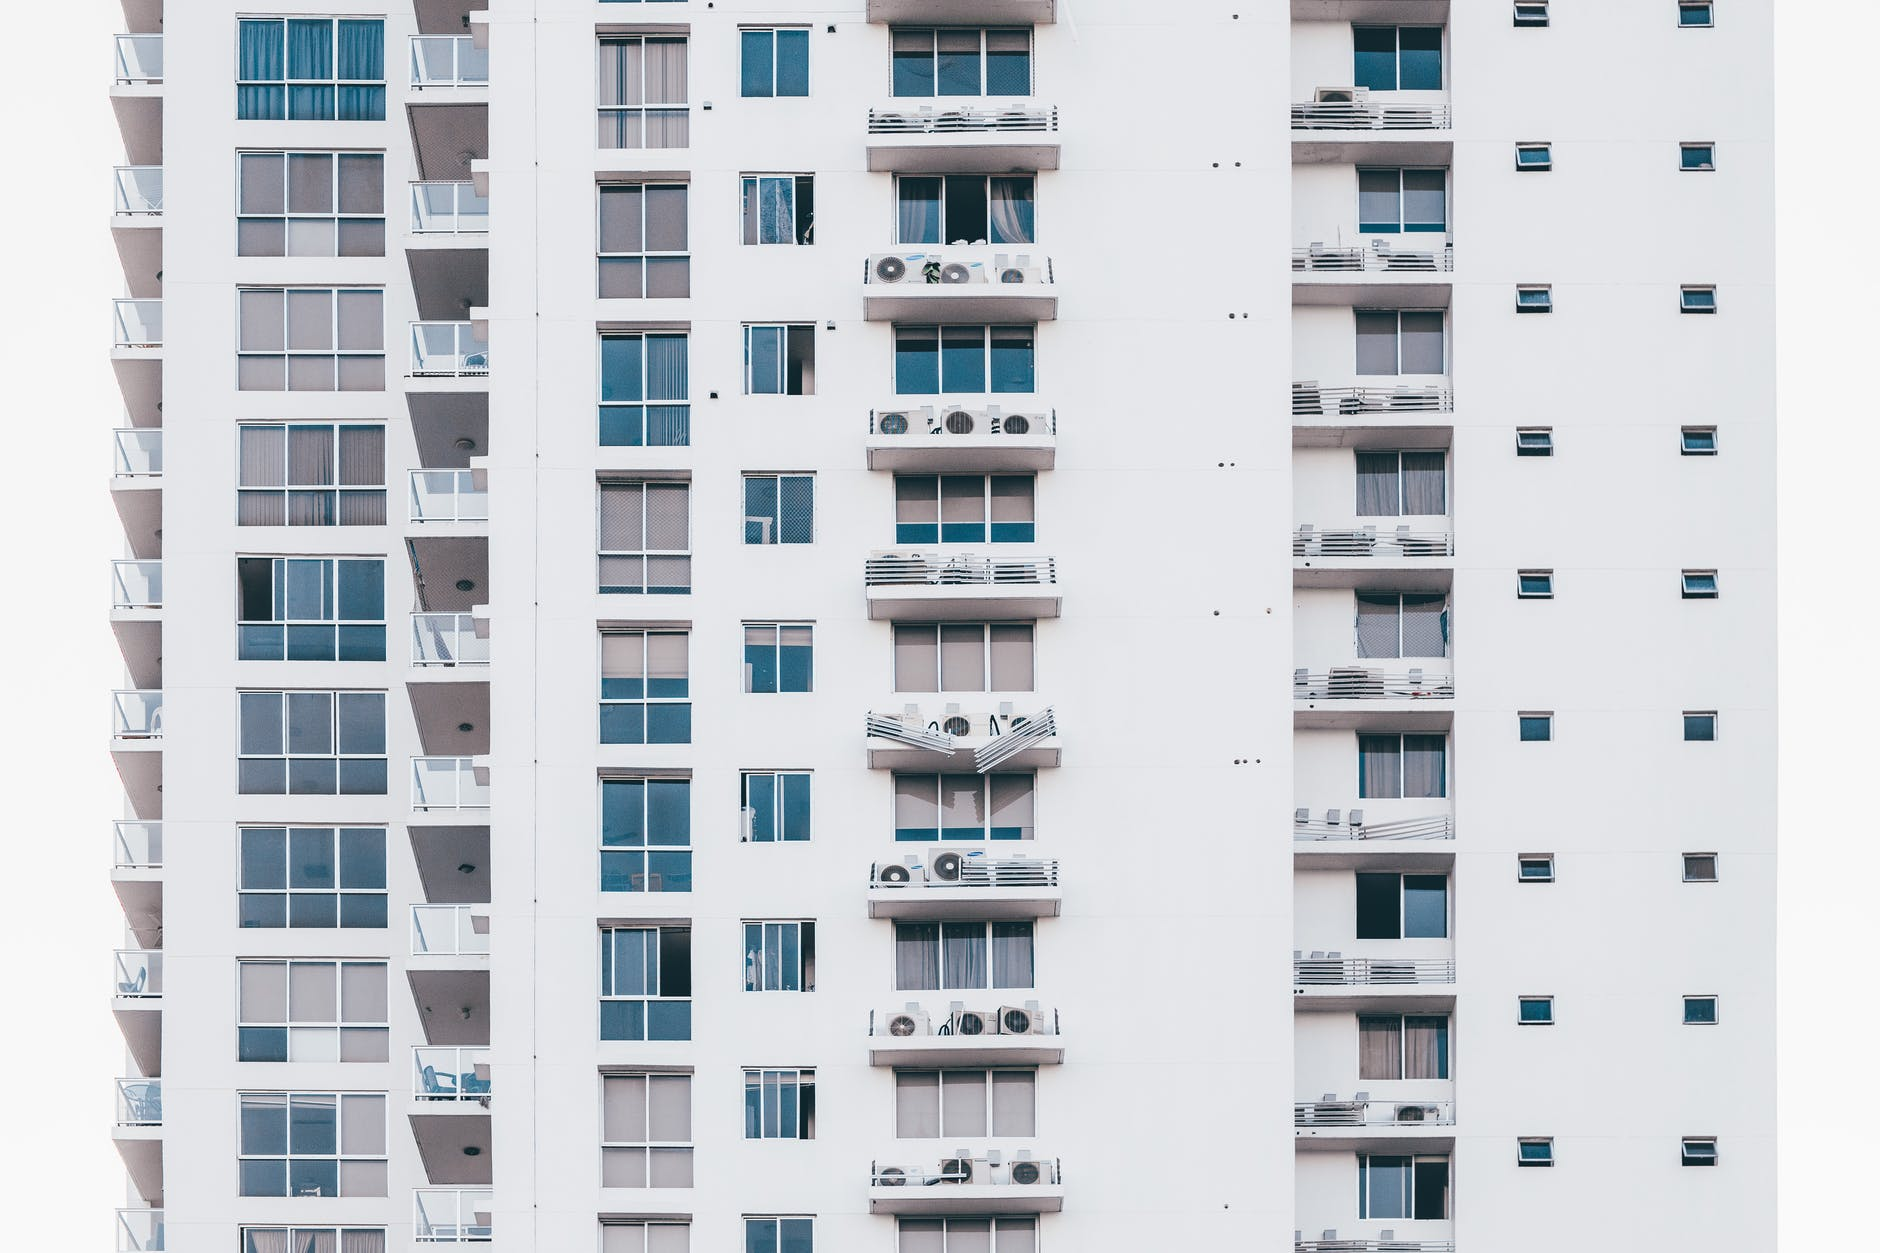 minimalist photography of white and gray condominium